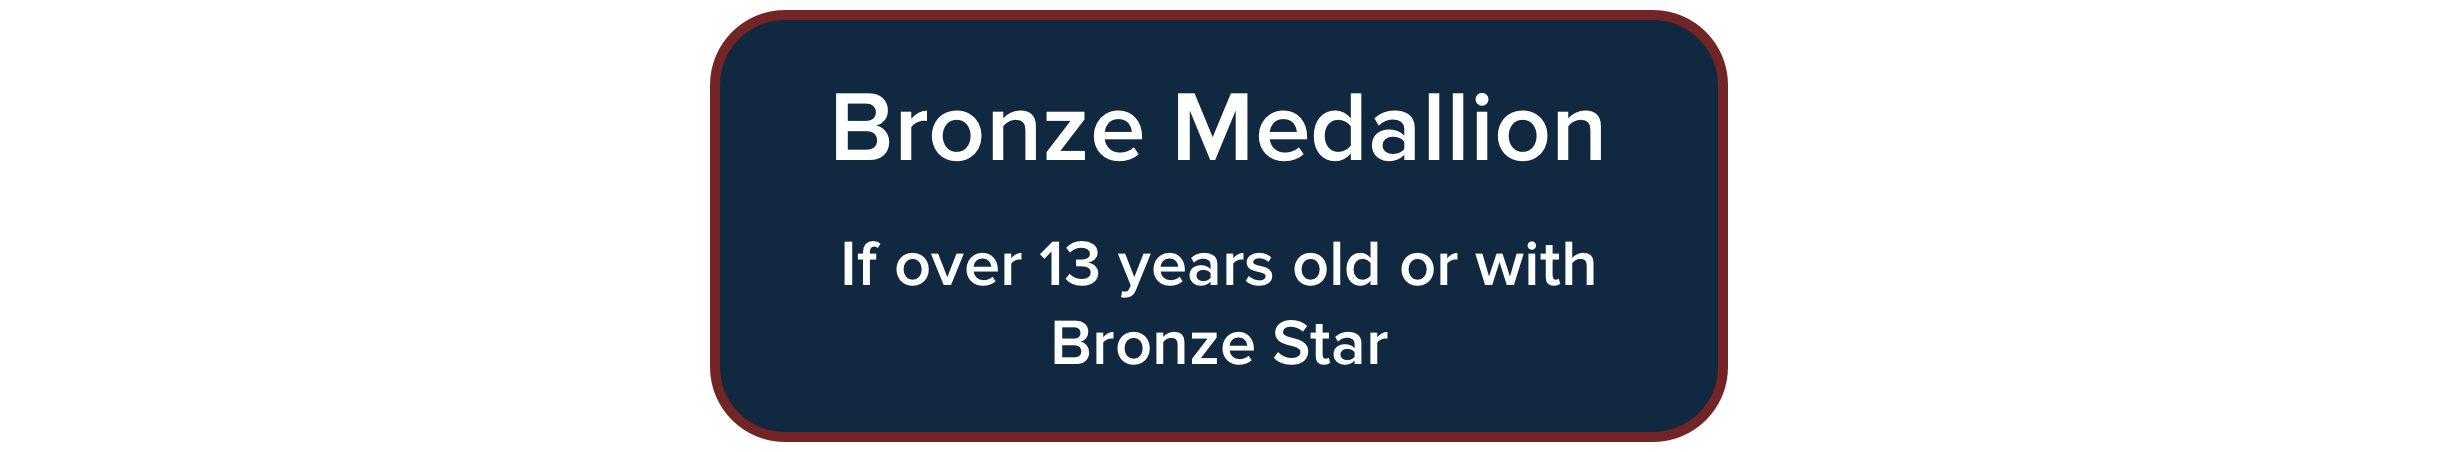 Bronze Medallion Course for over 13 years of age, or with Bronze Star Certification